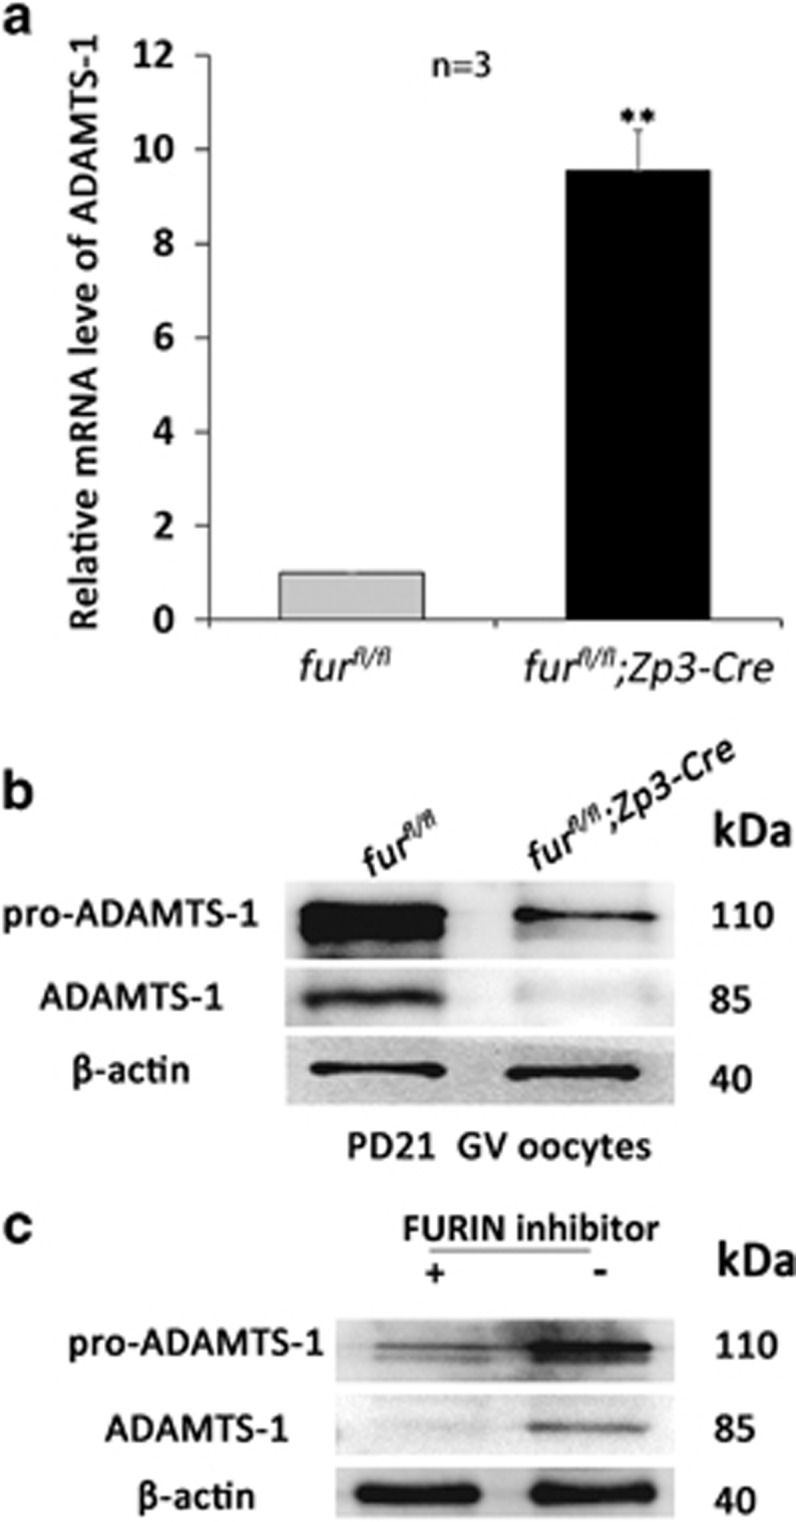 Oocyte-specific deletion of furin causes loss of the mature form of ADAMTS1 in oocytes. ( a ) qRT-PCR analysis of the mRNA expression of ADAMTS-1 in oocytes with the indicated genotypes. ** P